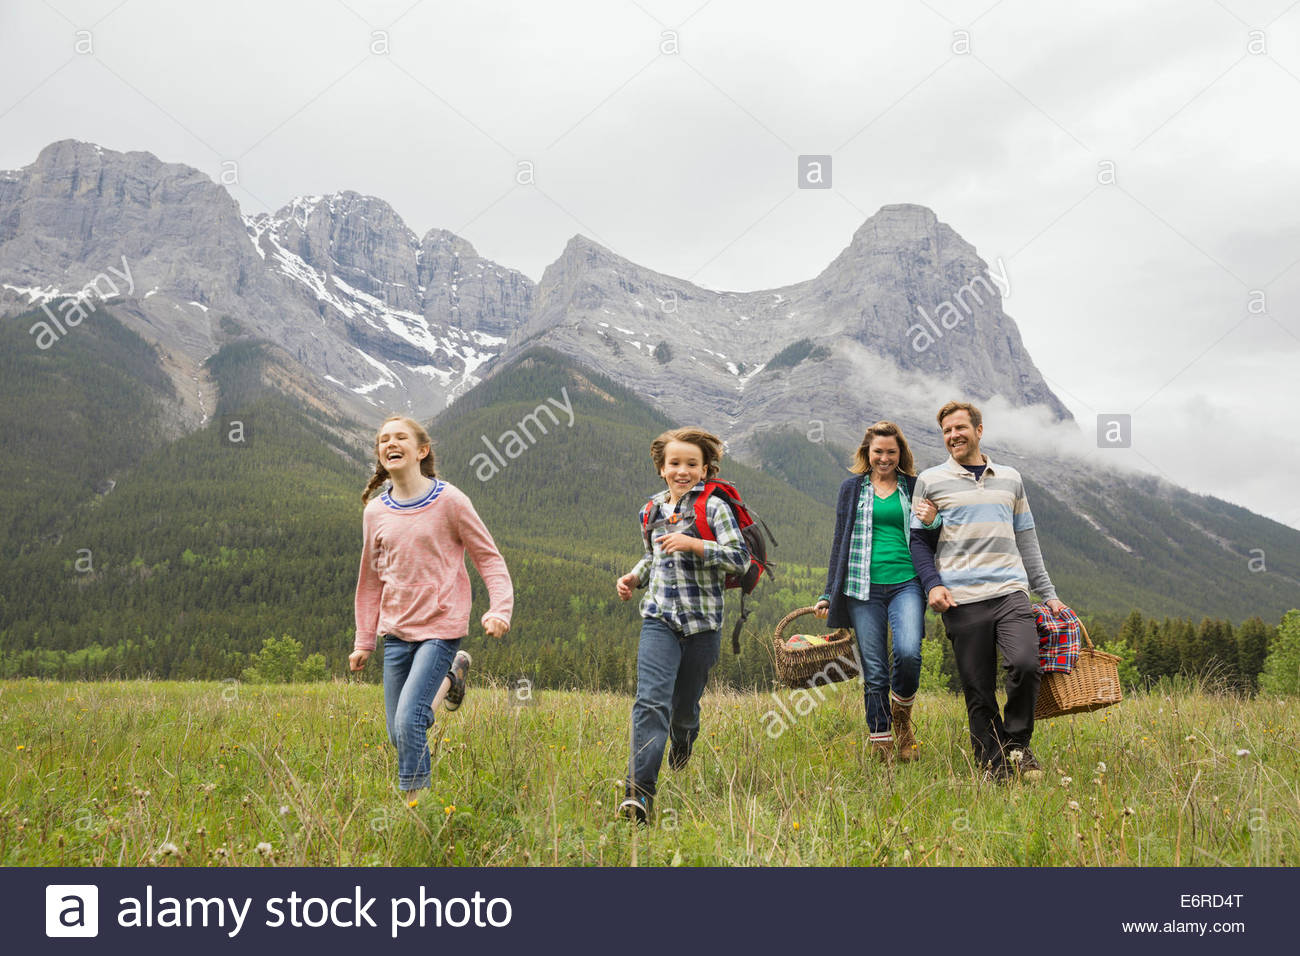 Family having picnic in rural field Photo Stock